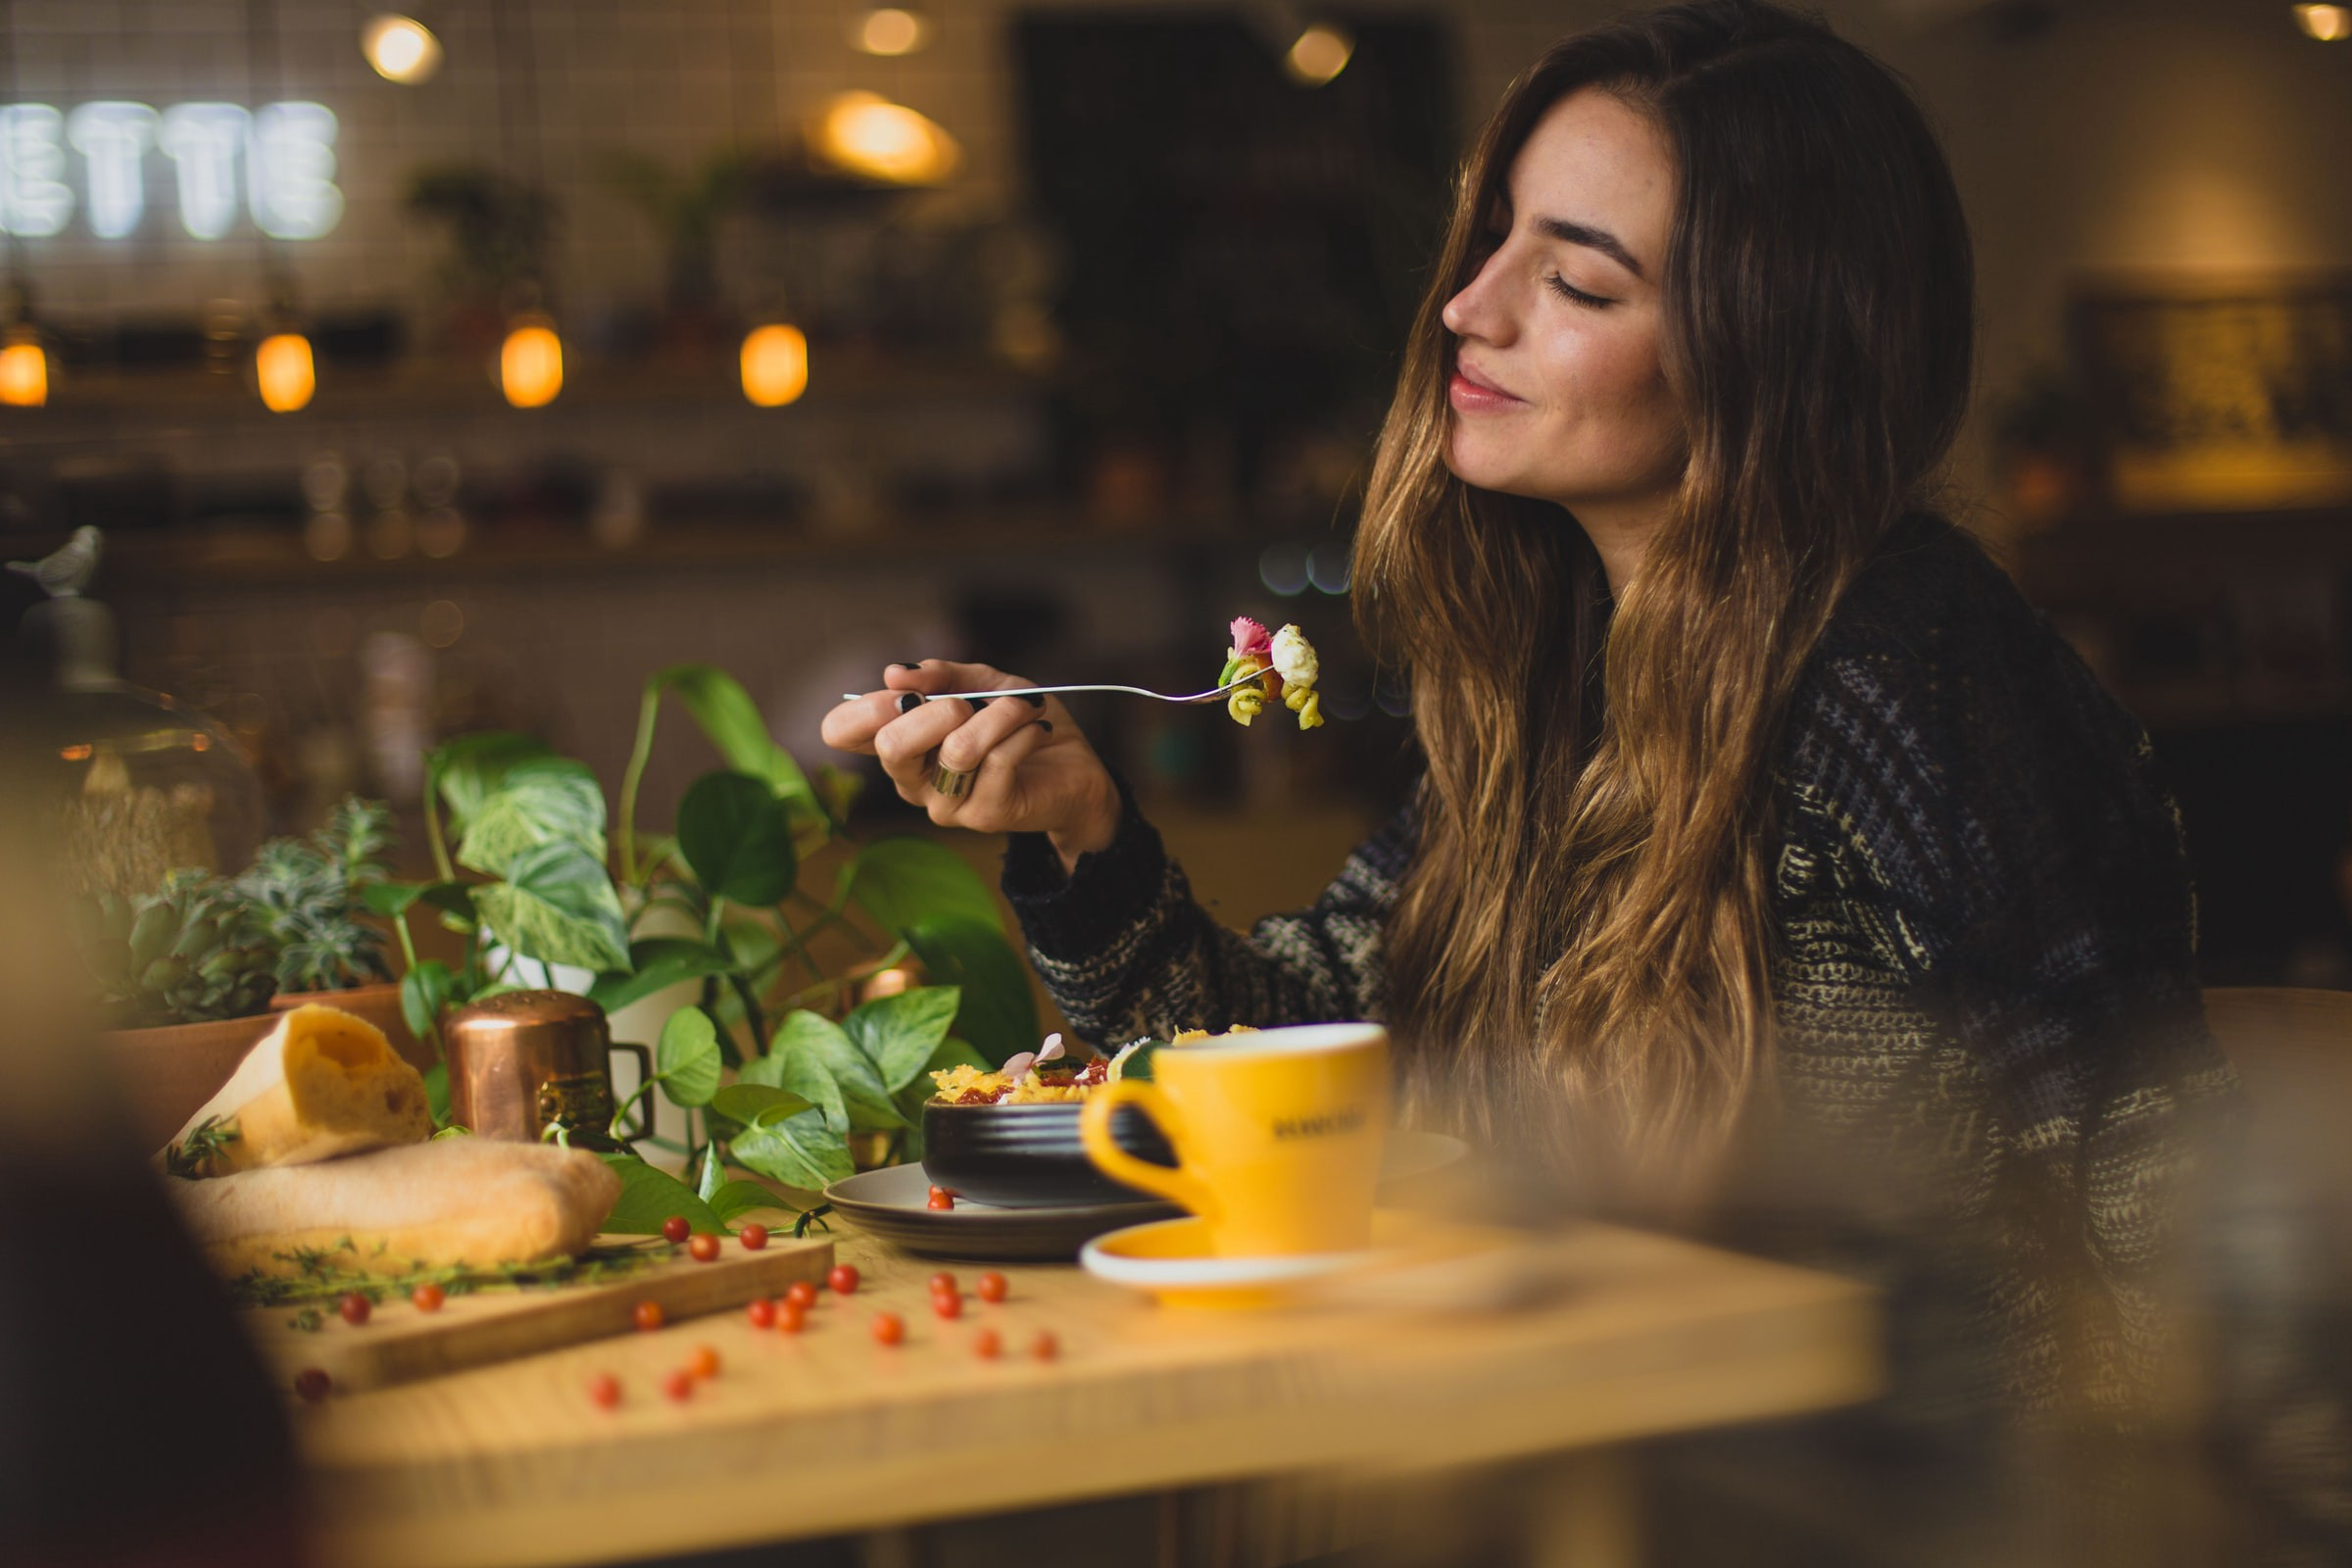 girl eating with eyes closed in a cafe